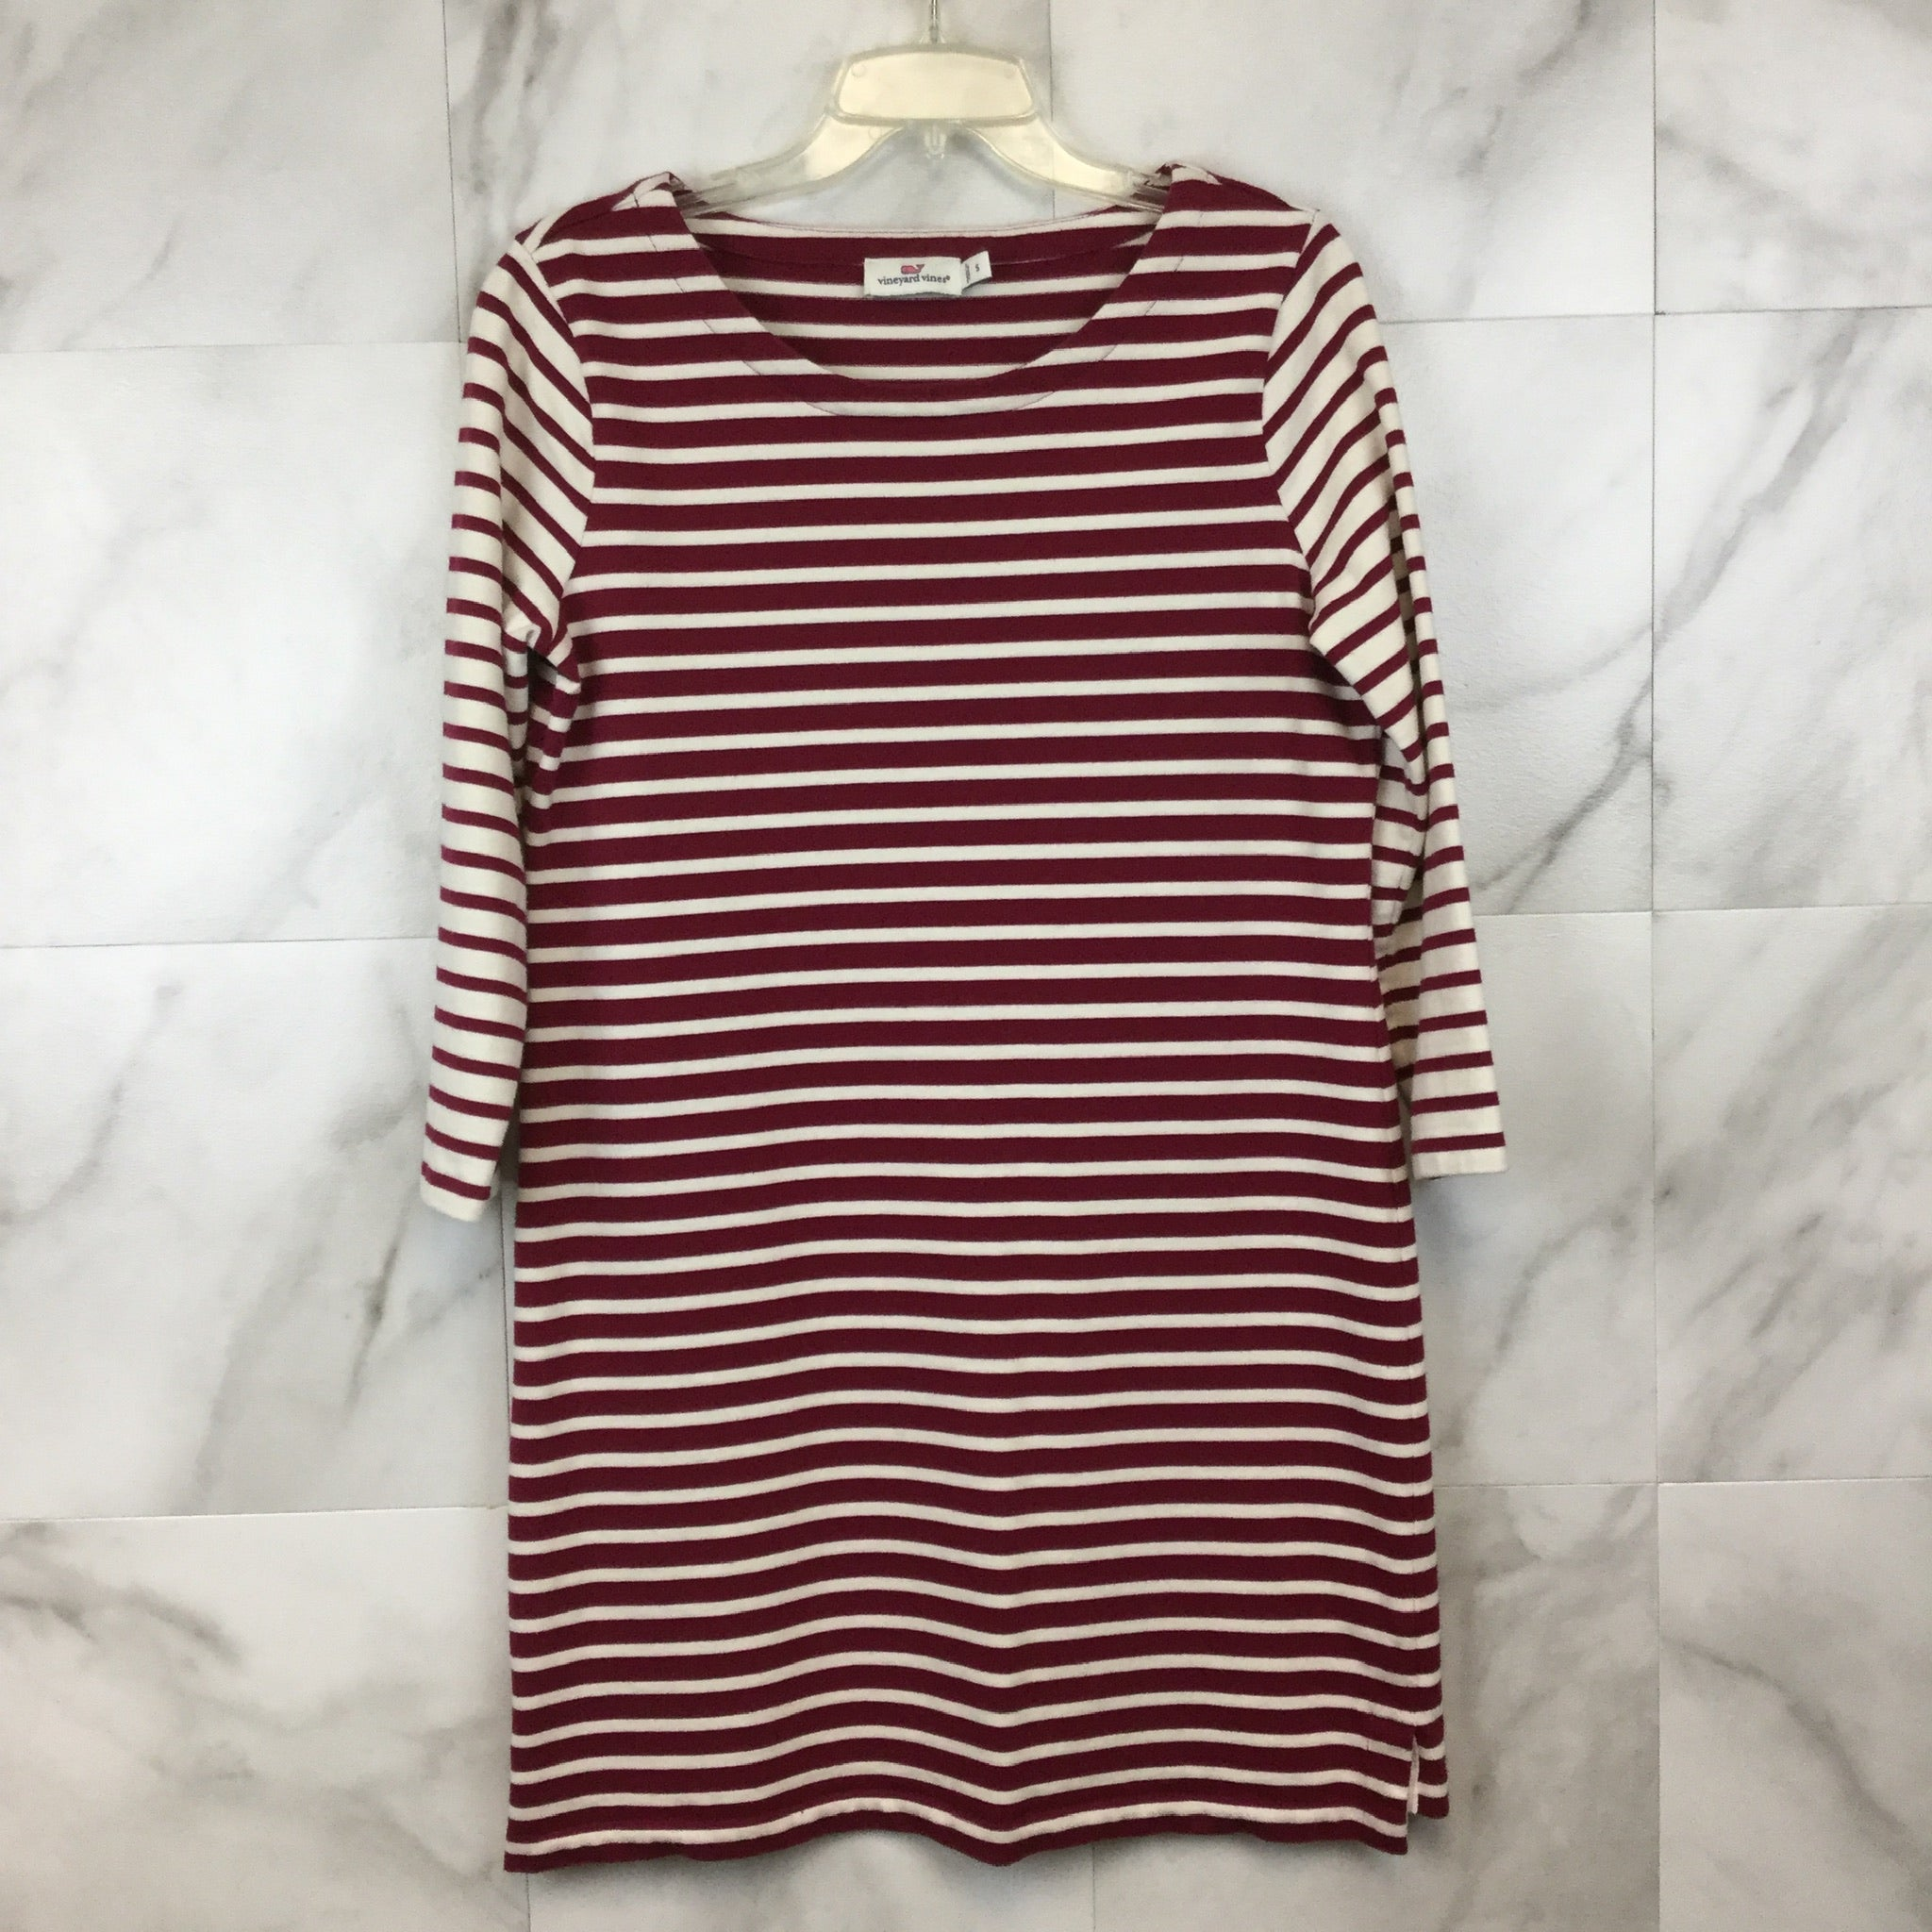 Vineyard Vines Mixed Stripe Knit Dress- size S